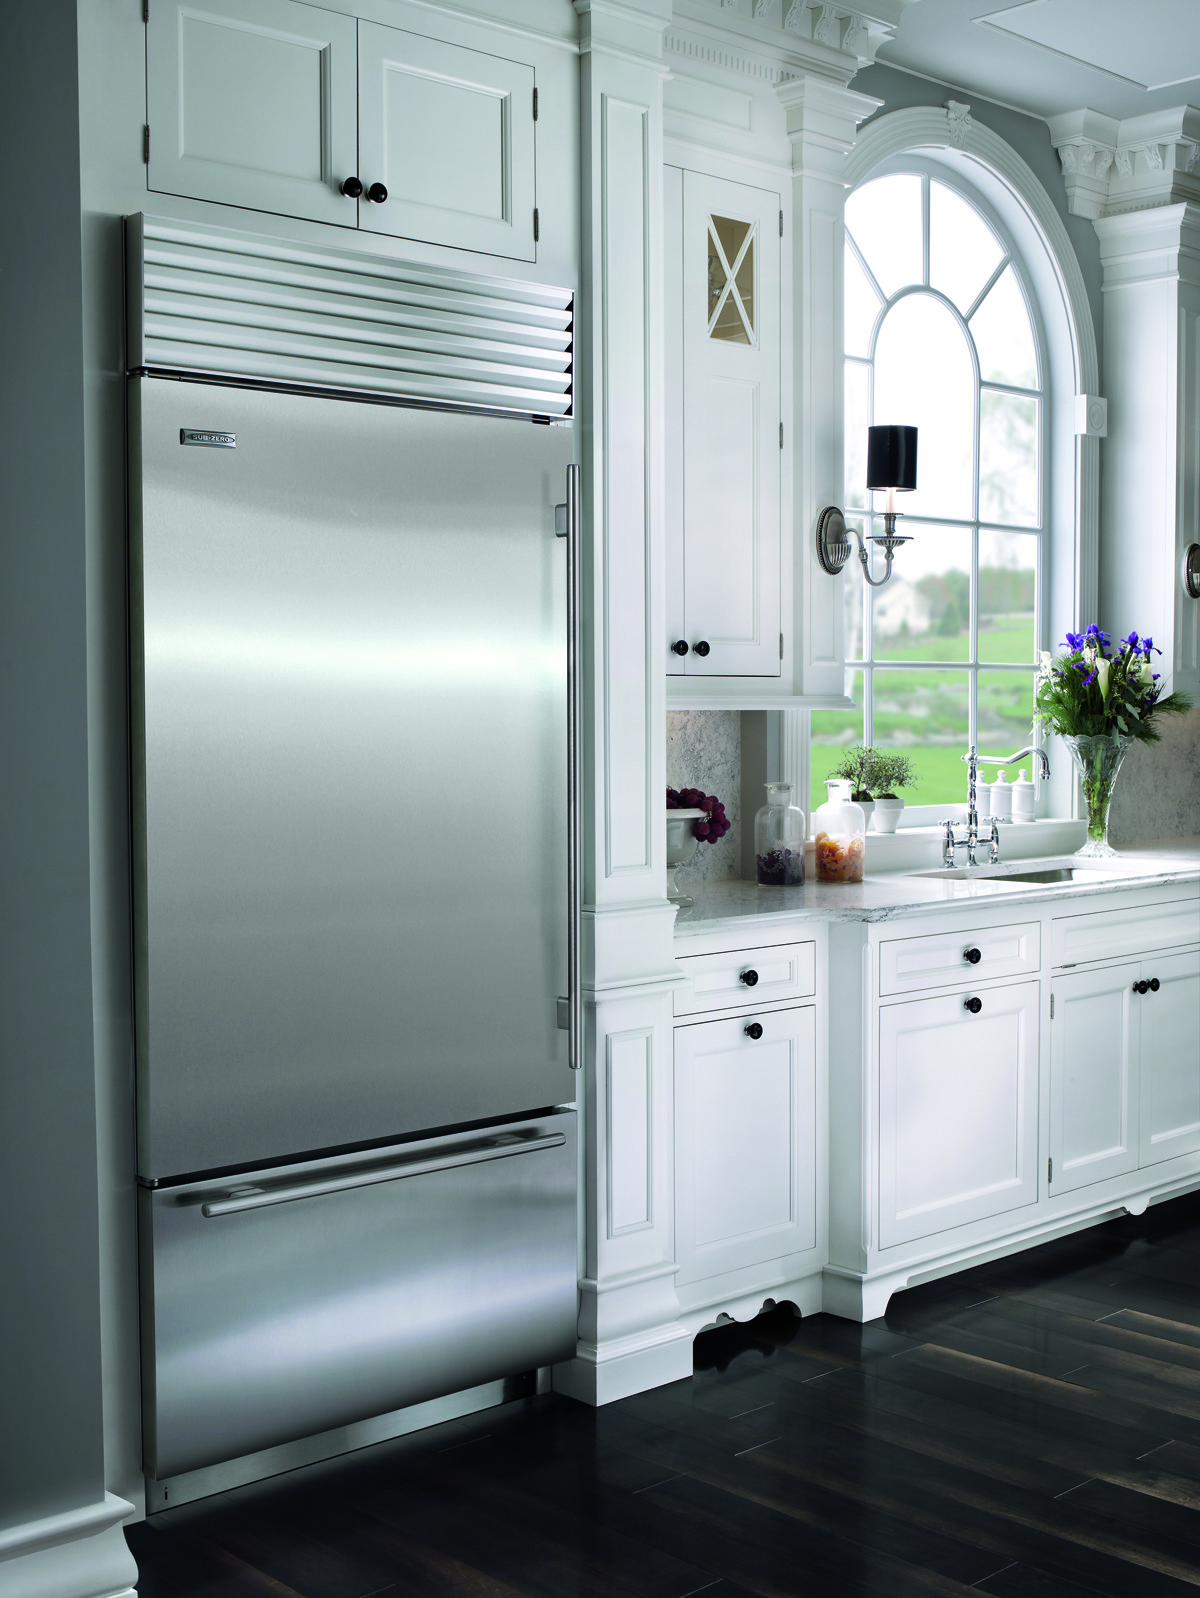 Built In Refrigerator Differences - Momentum Construction